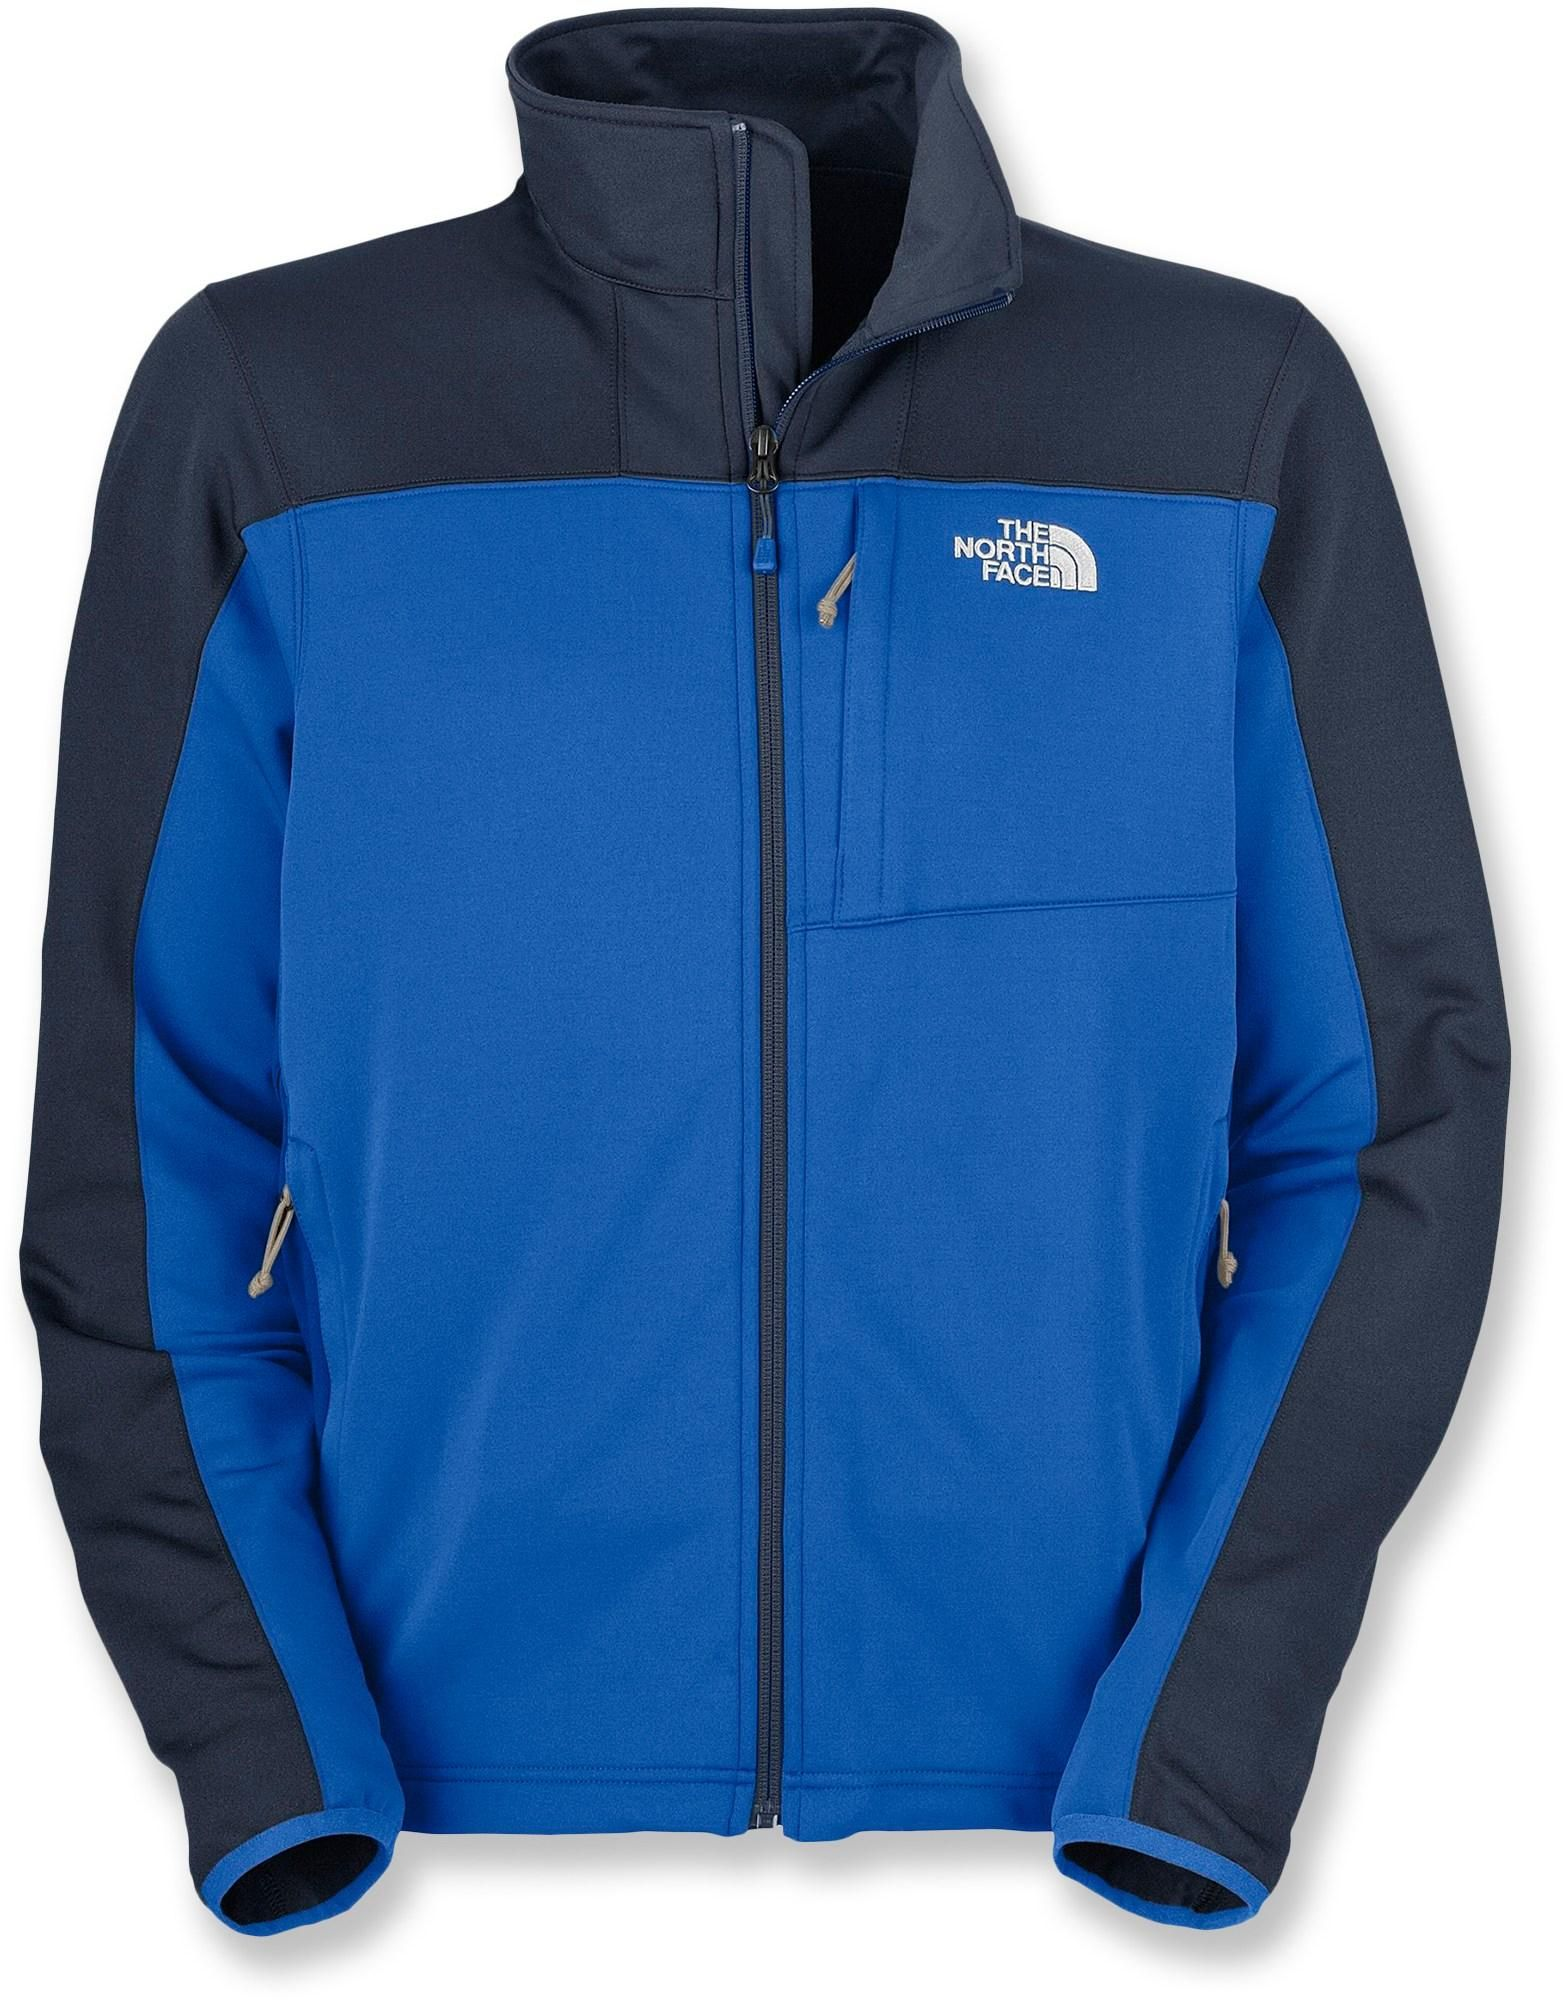 One For The Guys At Rei Outlet The North Face Momentum Jacket North Face Jacket Jackets The North Face [ 2000 x 1563 Pixel ]